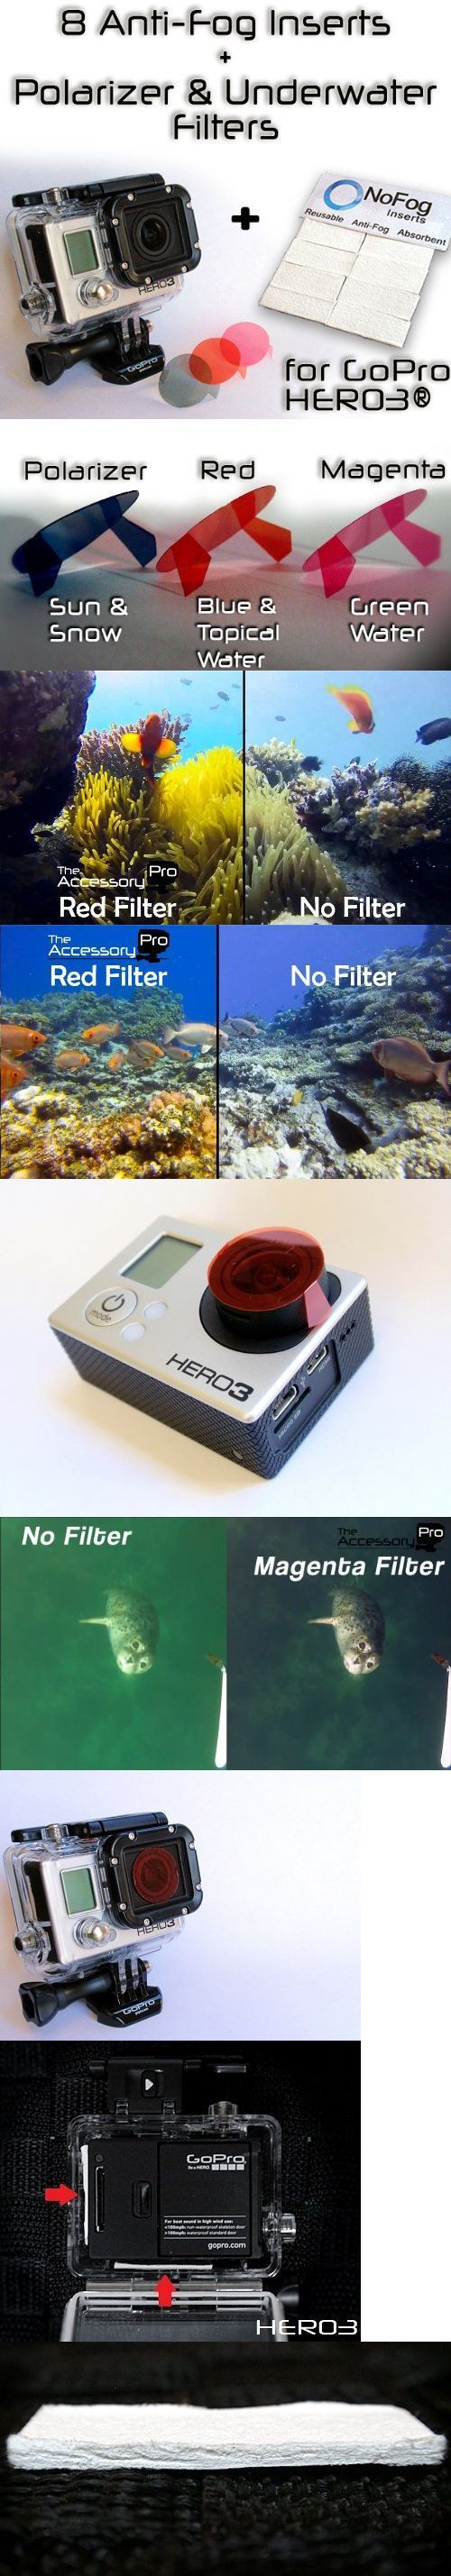 GoPro Hero3 Bundle - 8 Anti-Fog Inserts, Polarizer, Red, Magenta Filters - These Filters and Anti-Fog Inserts only work with HERO3®️️️ cameras (view our other items for HERO2®️️️ & HERO®️️️. Camera pictured is not included.Filter TypesThe filters 3 Pack contains: - Polarizer (Sun ... - Camcorders - Photo & Camera - $16.99